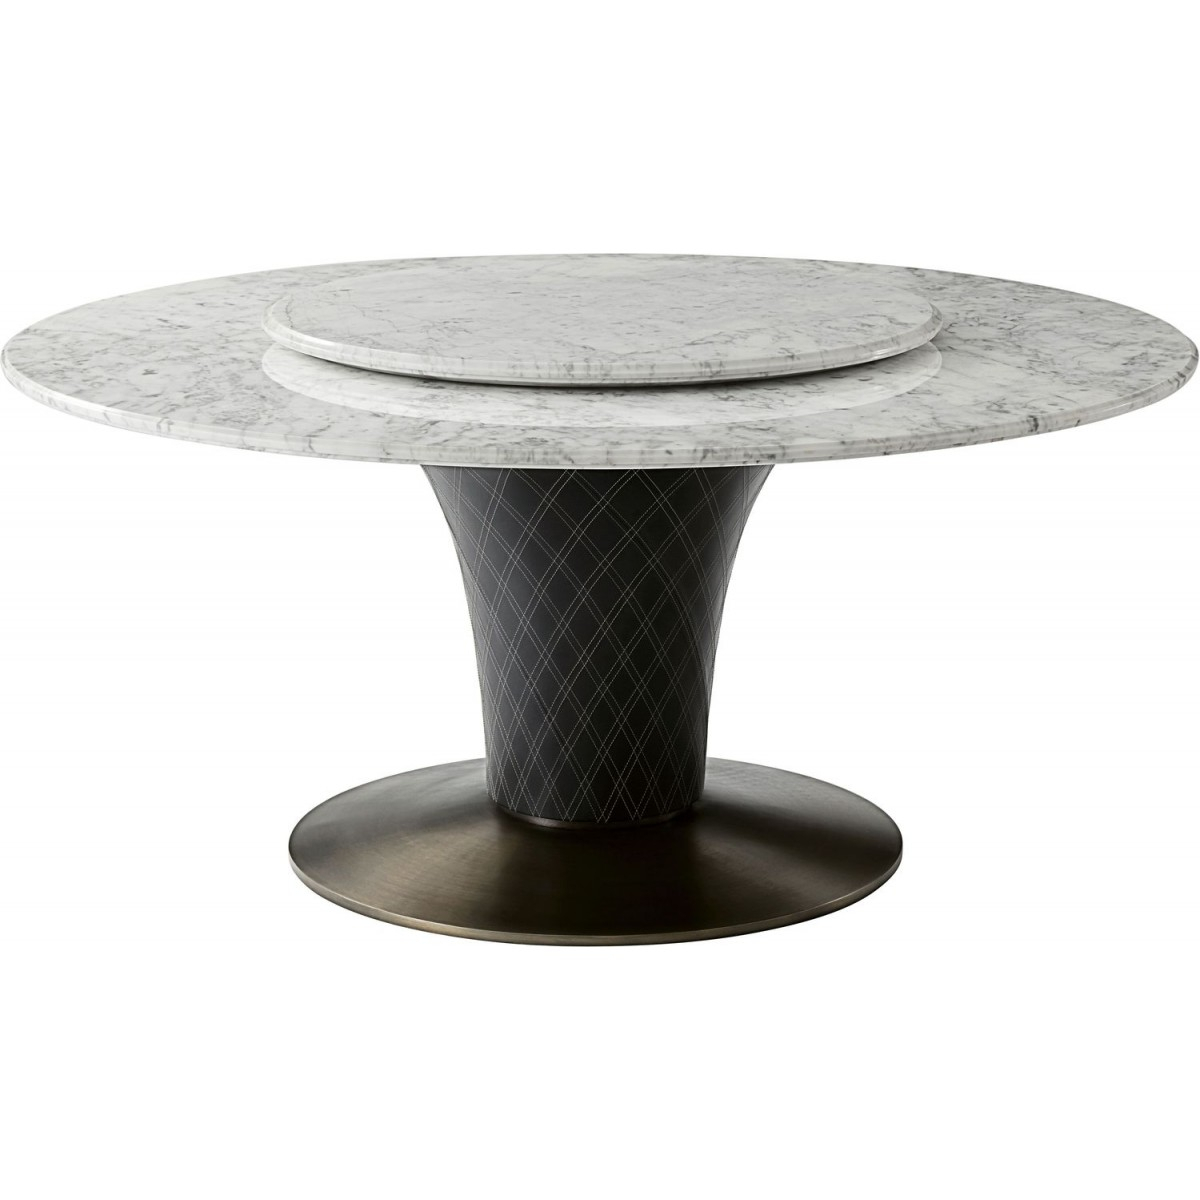 Theodore Alexander Steve Leung Pirouette Round Dining Table With Regard To Most Recently Released Alexandra Round Marble Pedestal Dining Tables (View 12 of 25)